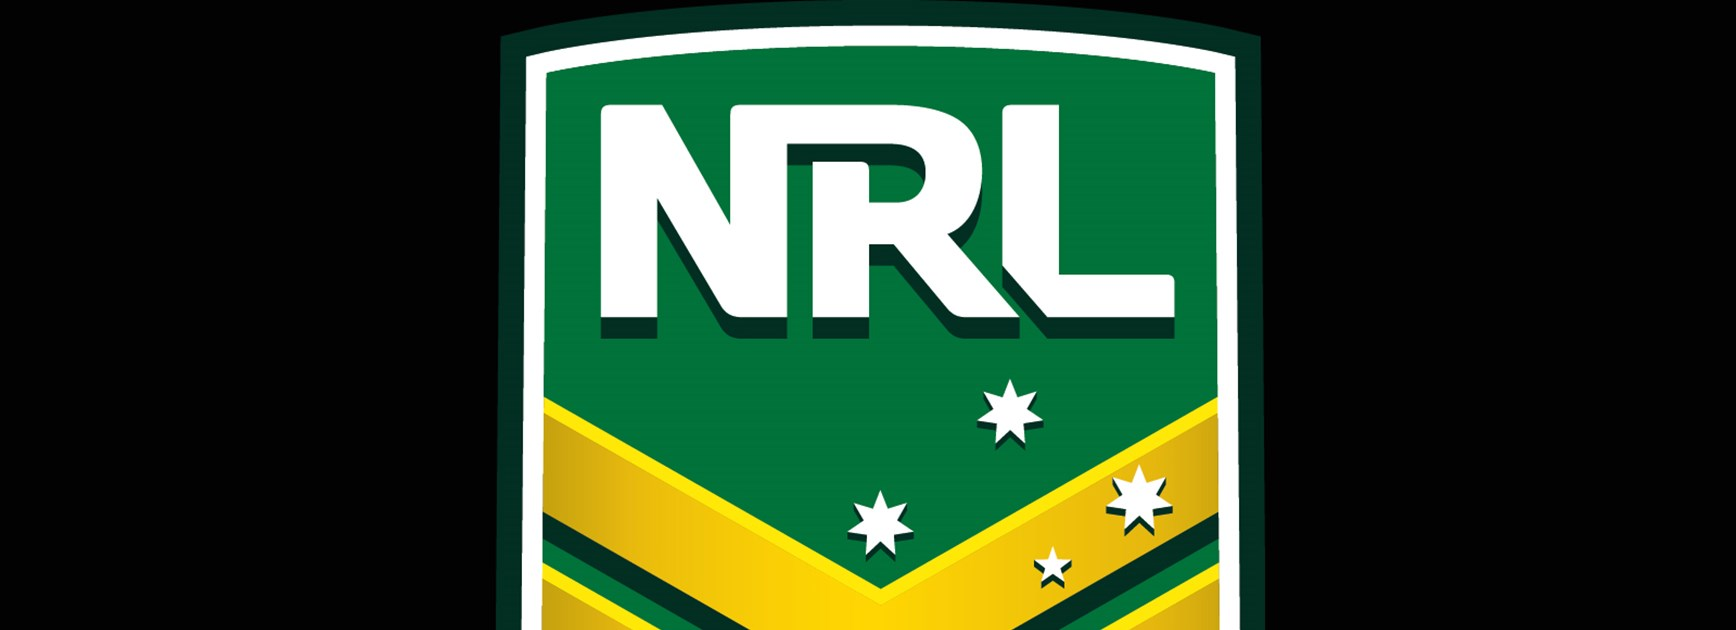 NRL logo on black background.